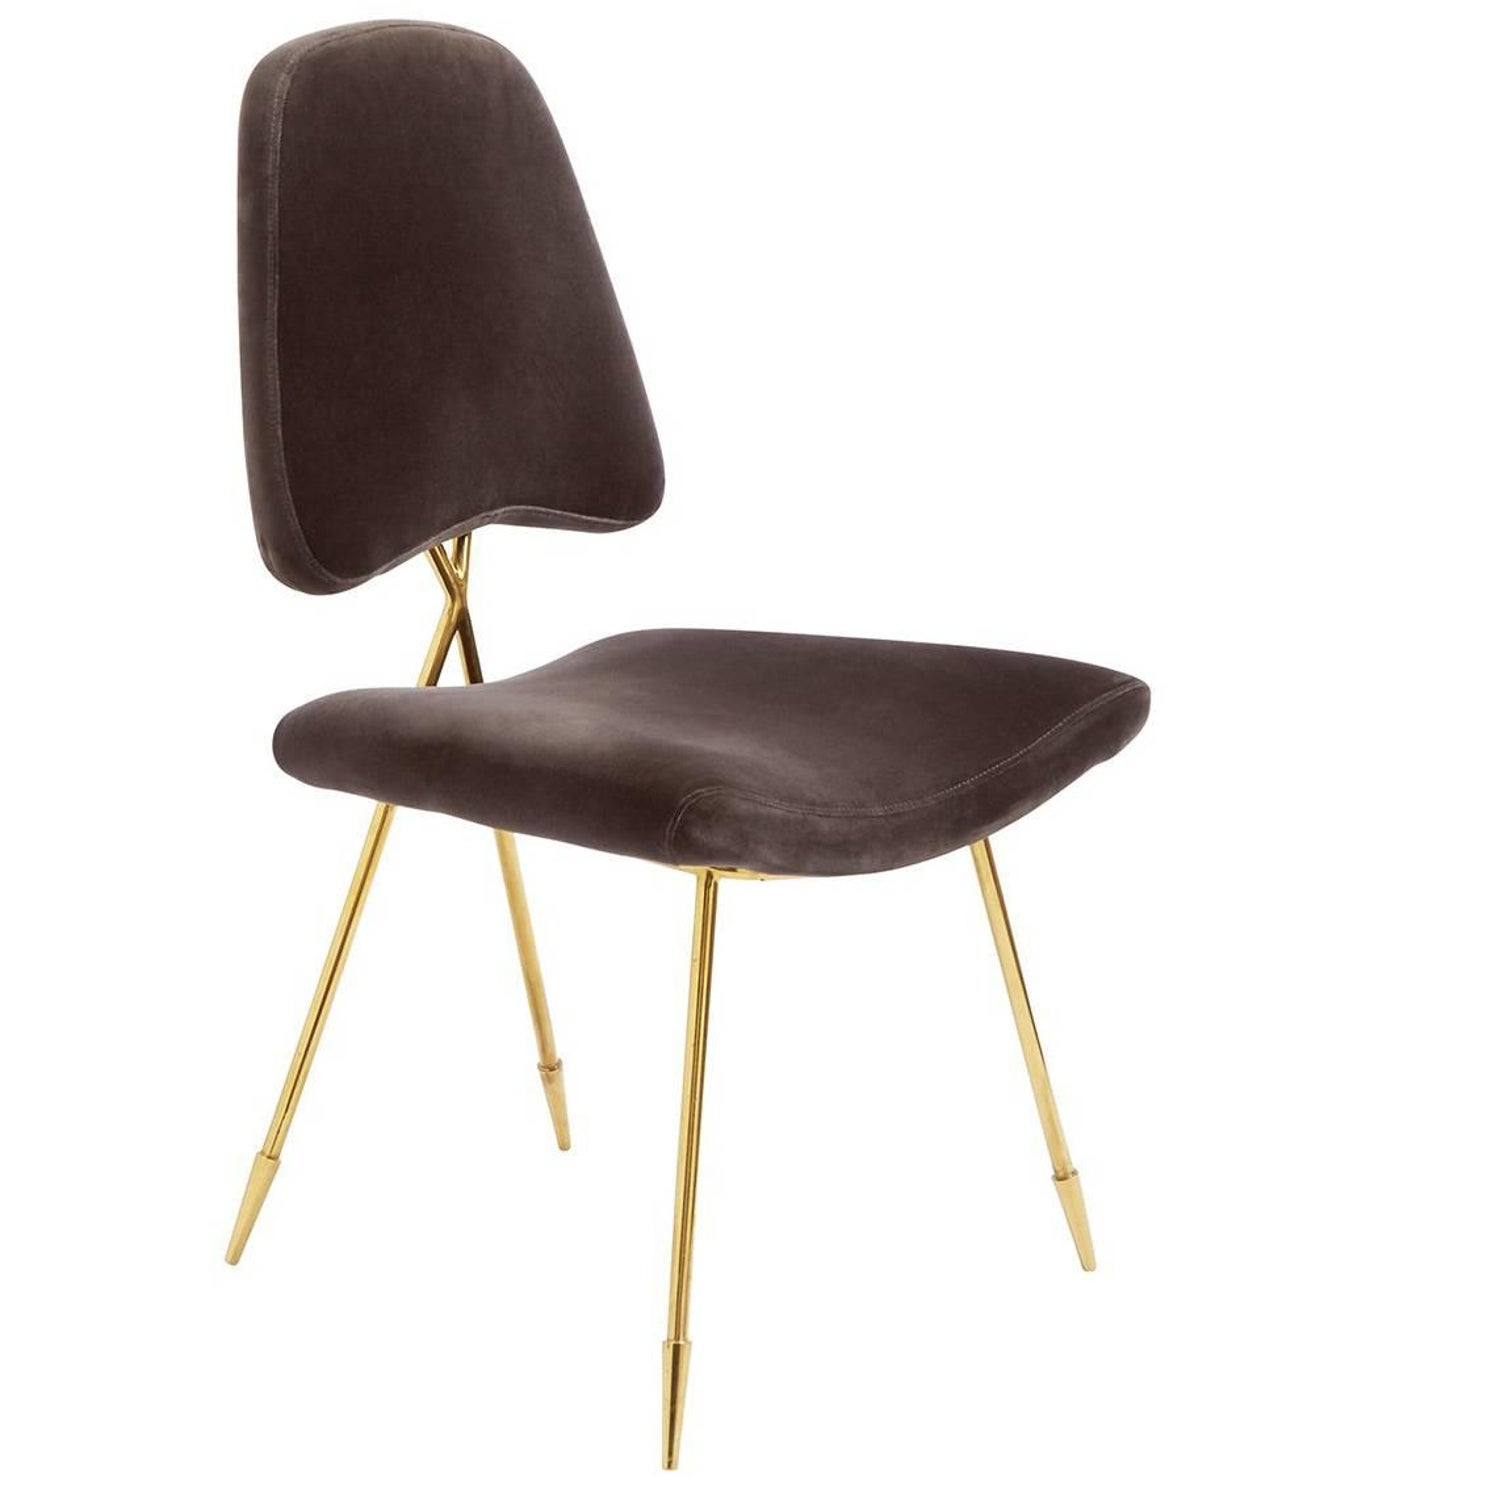 Maxime Velvet and Brass Dining Chair For Sale at 1stdibs